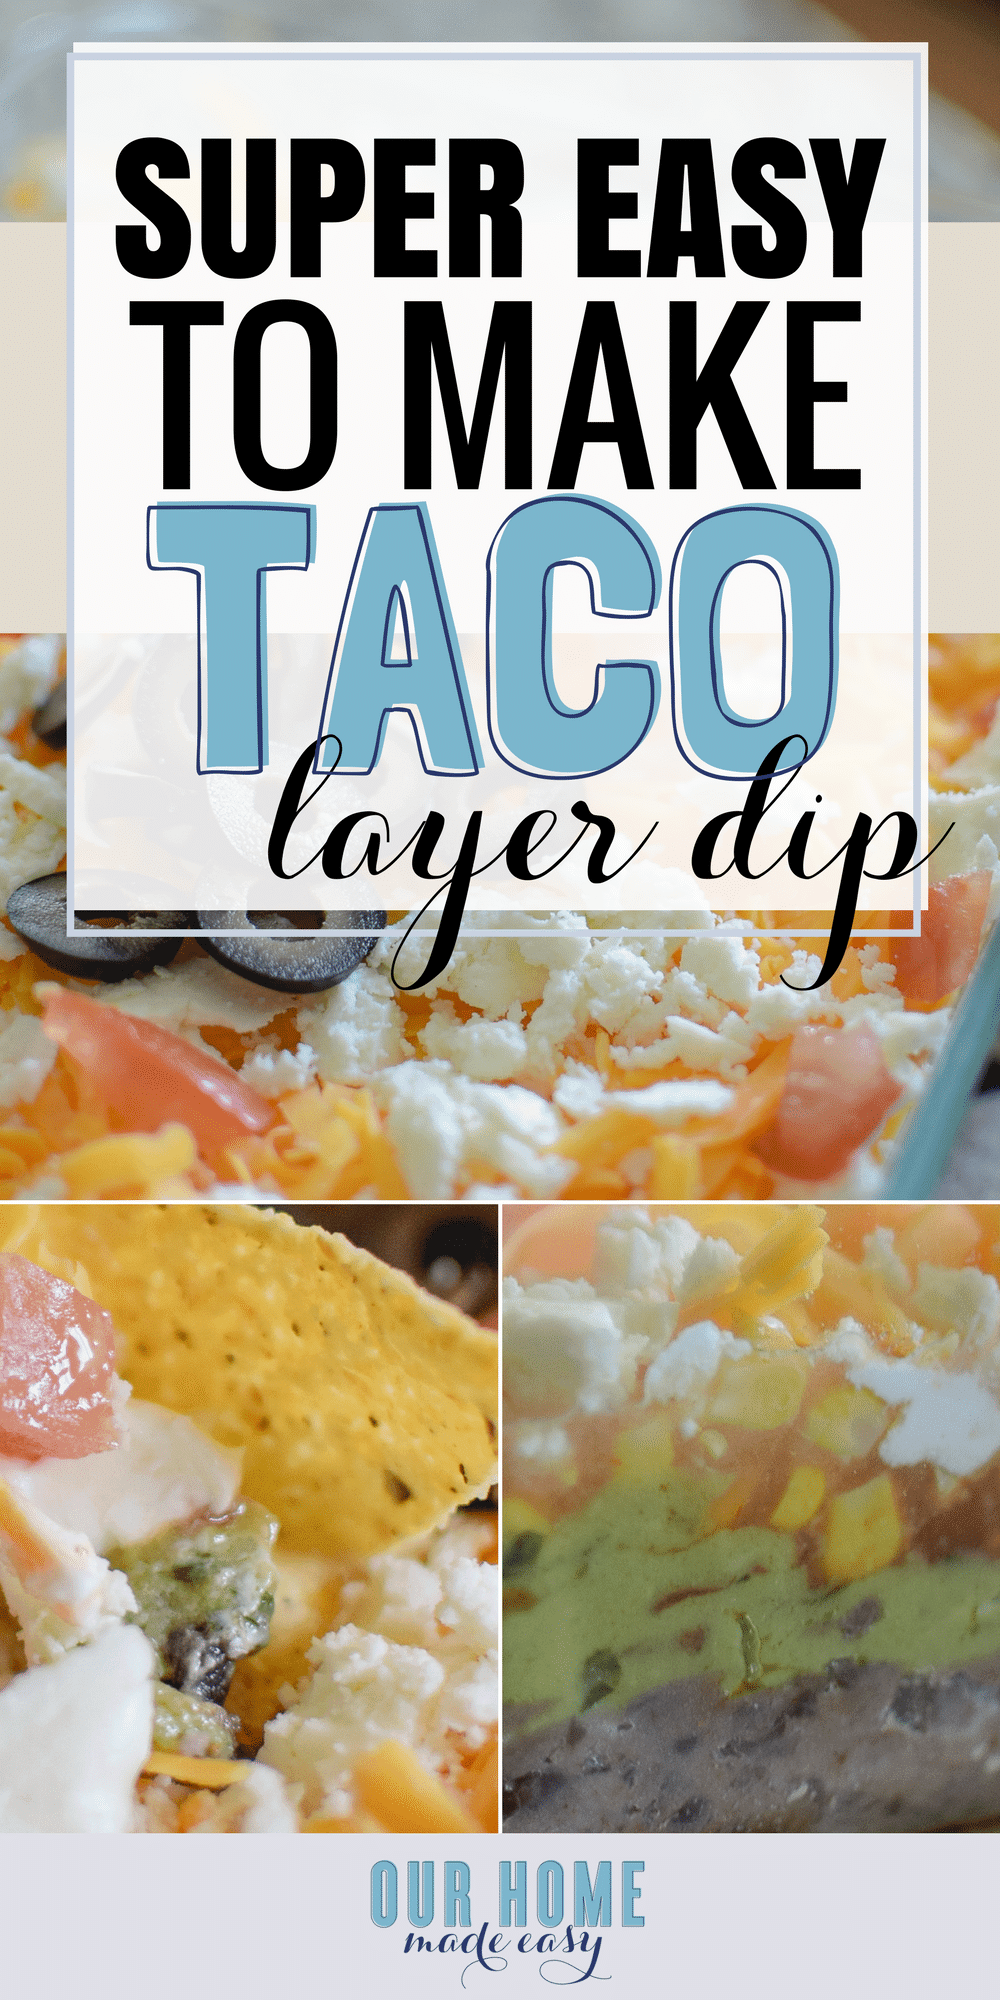 This quick & easy taco layer dip is perfect for your next party! Start with a simple base and keep adding layers of your favorite toppings. #appetizer #tacos #mexican #dips #sourcream #vegetarian